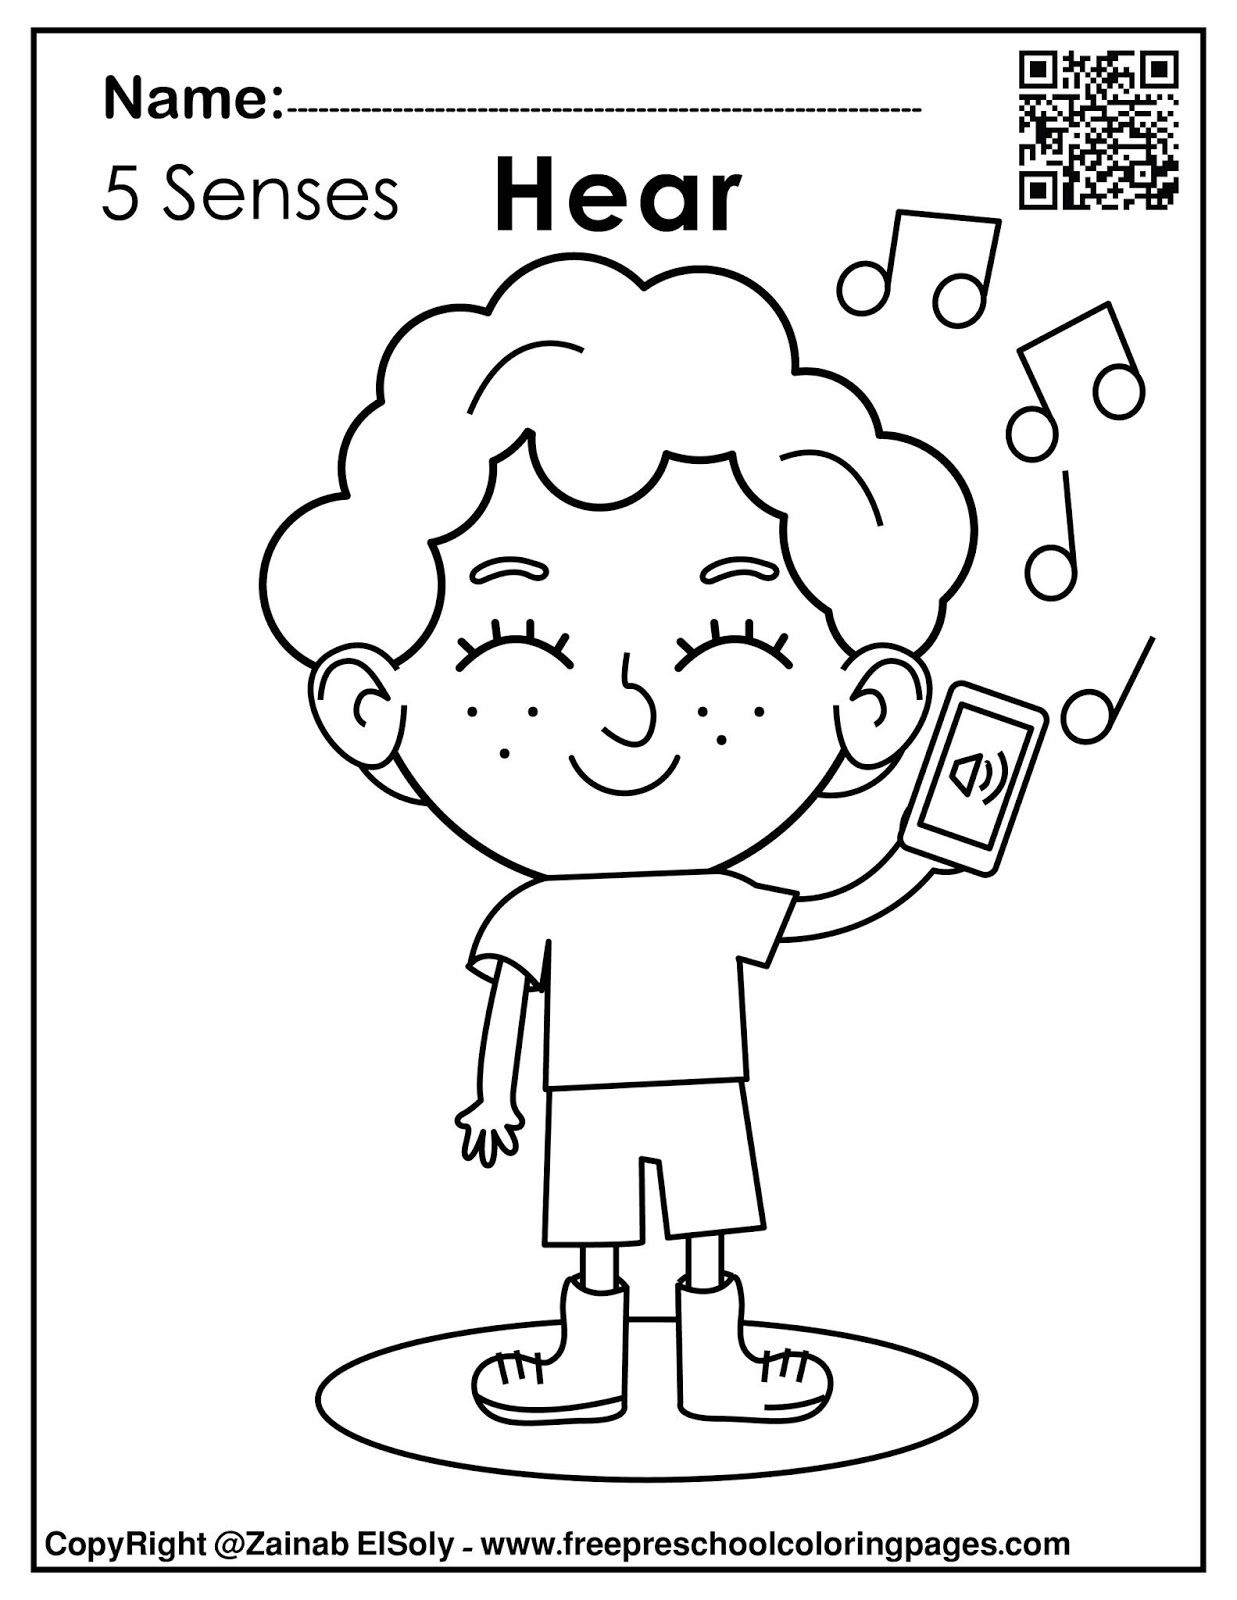 Free Printable 5 Senses Coloring Pages